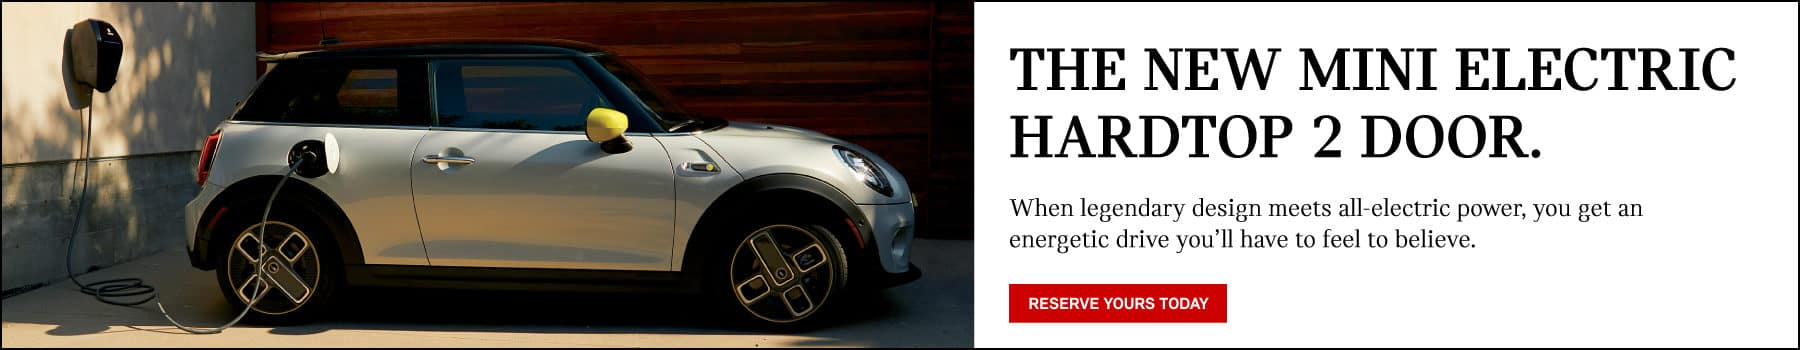 reserve the new mini electric hardtop.